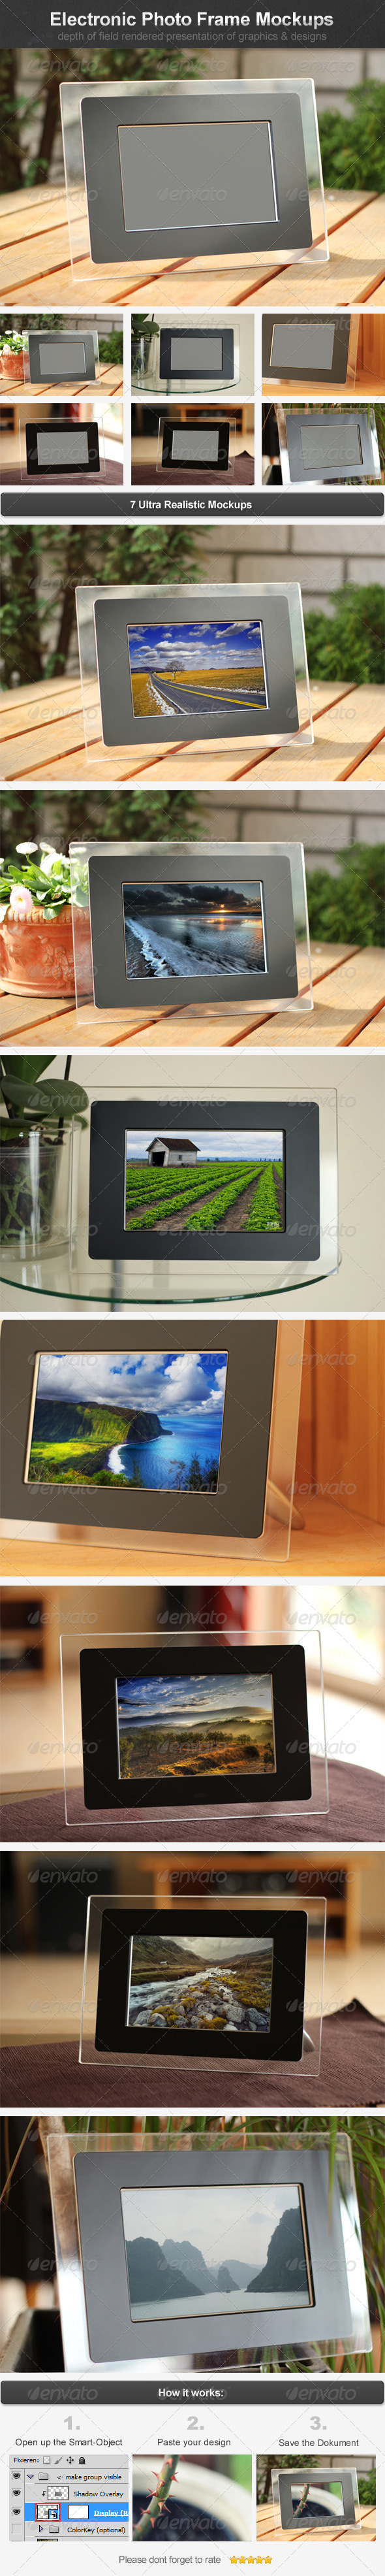 Electronic Photo Frame Mockups - Miscellaneous Displays